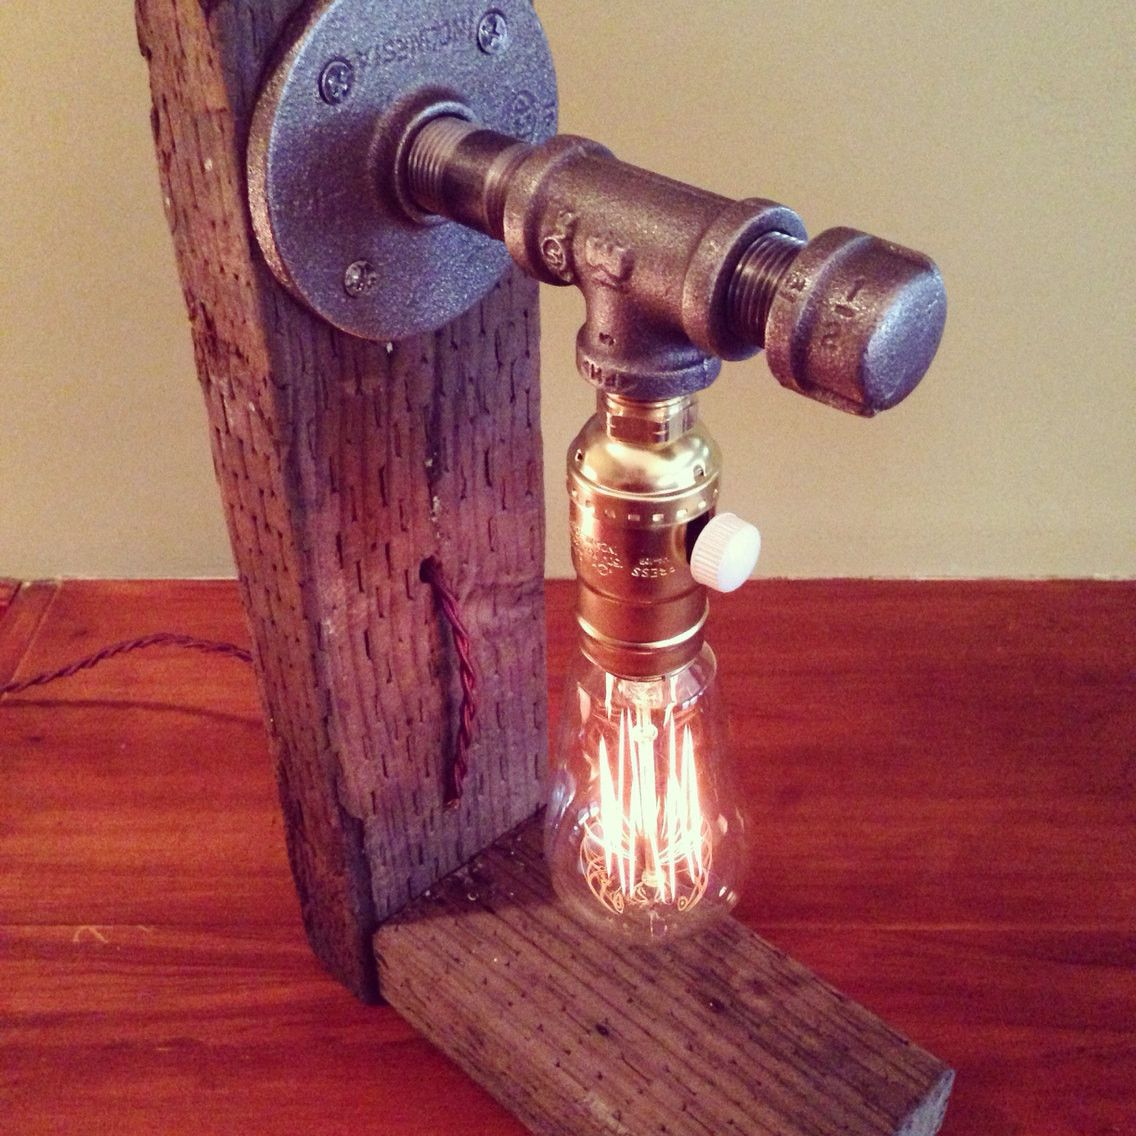 Bedside Lamp With Dimmer Switch Classic Industrial Steampunk Table Lamp With Dimmer In